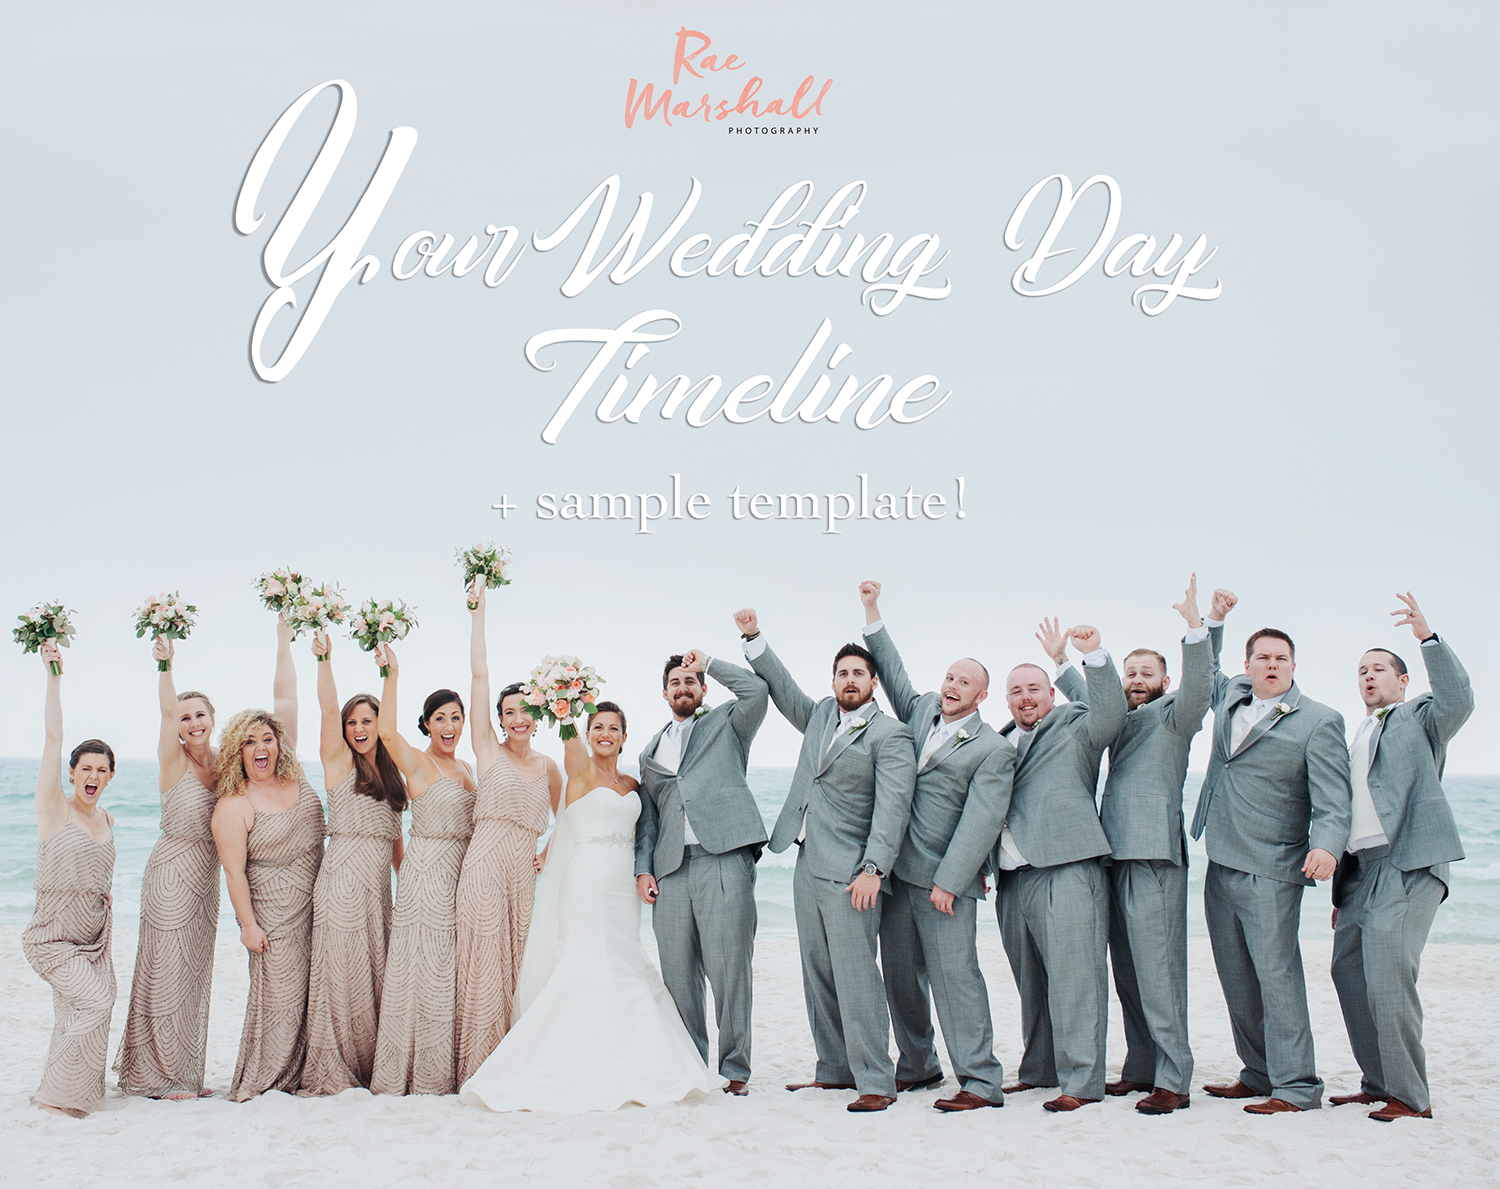 Wedding Day Timeline Sample Template! - Hawaii Wedding Photographer